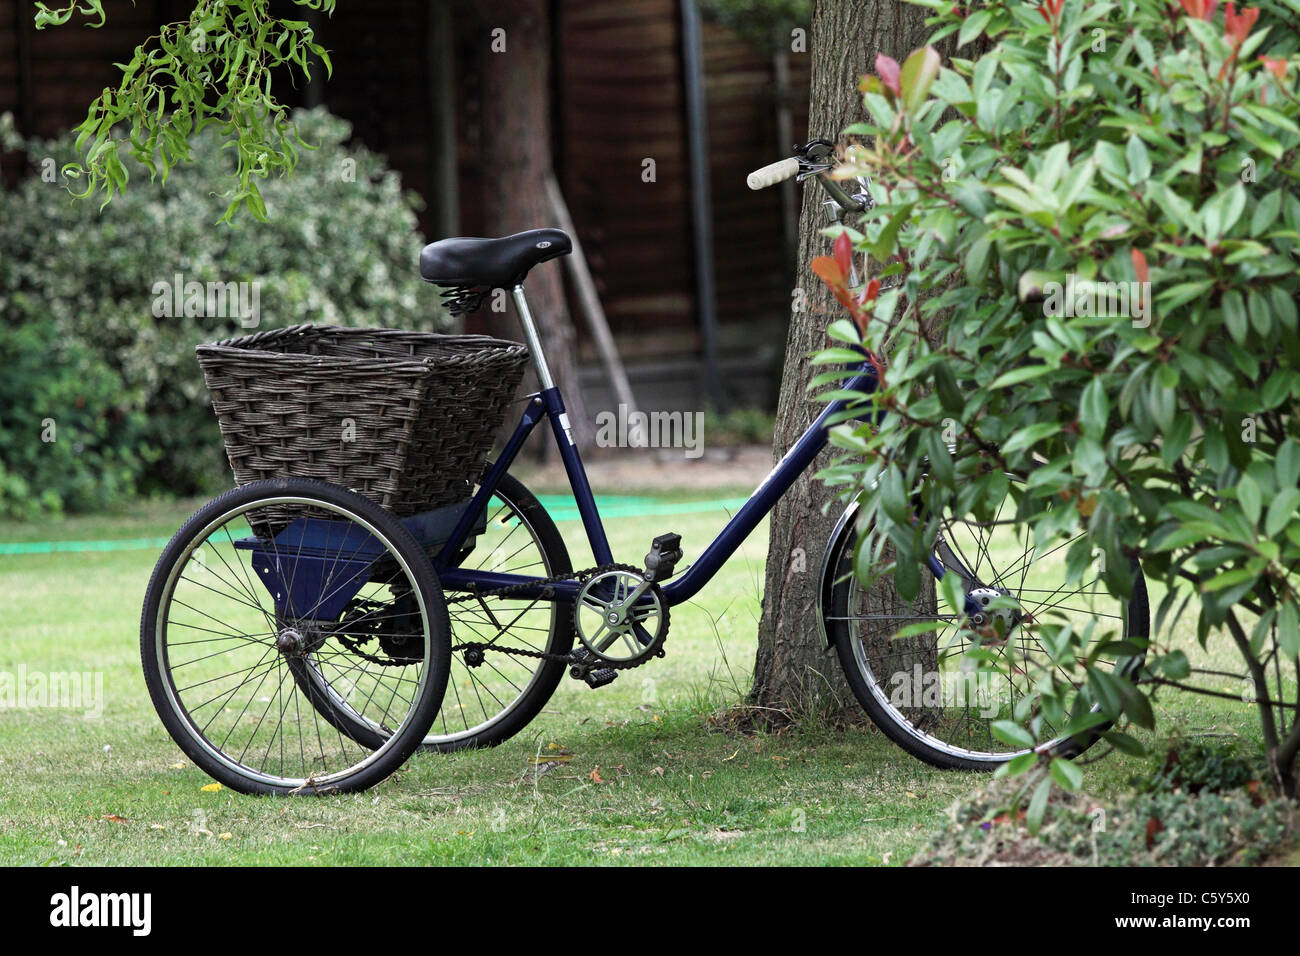 Adults tricycle in garden - Stock Image